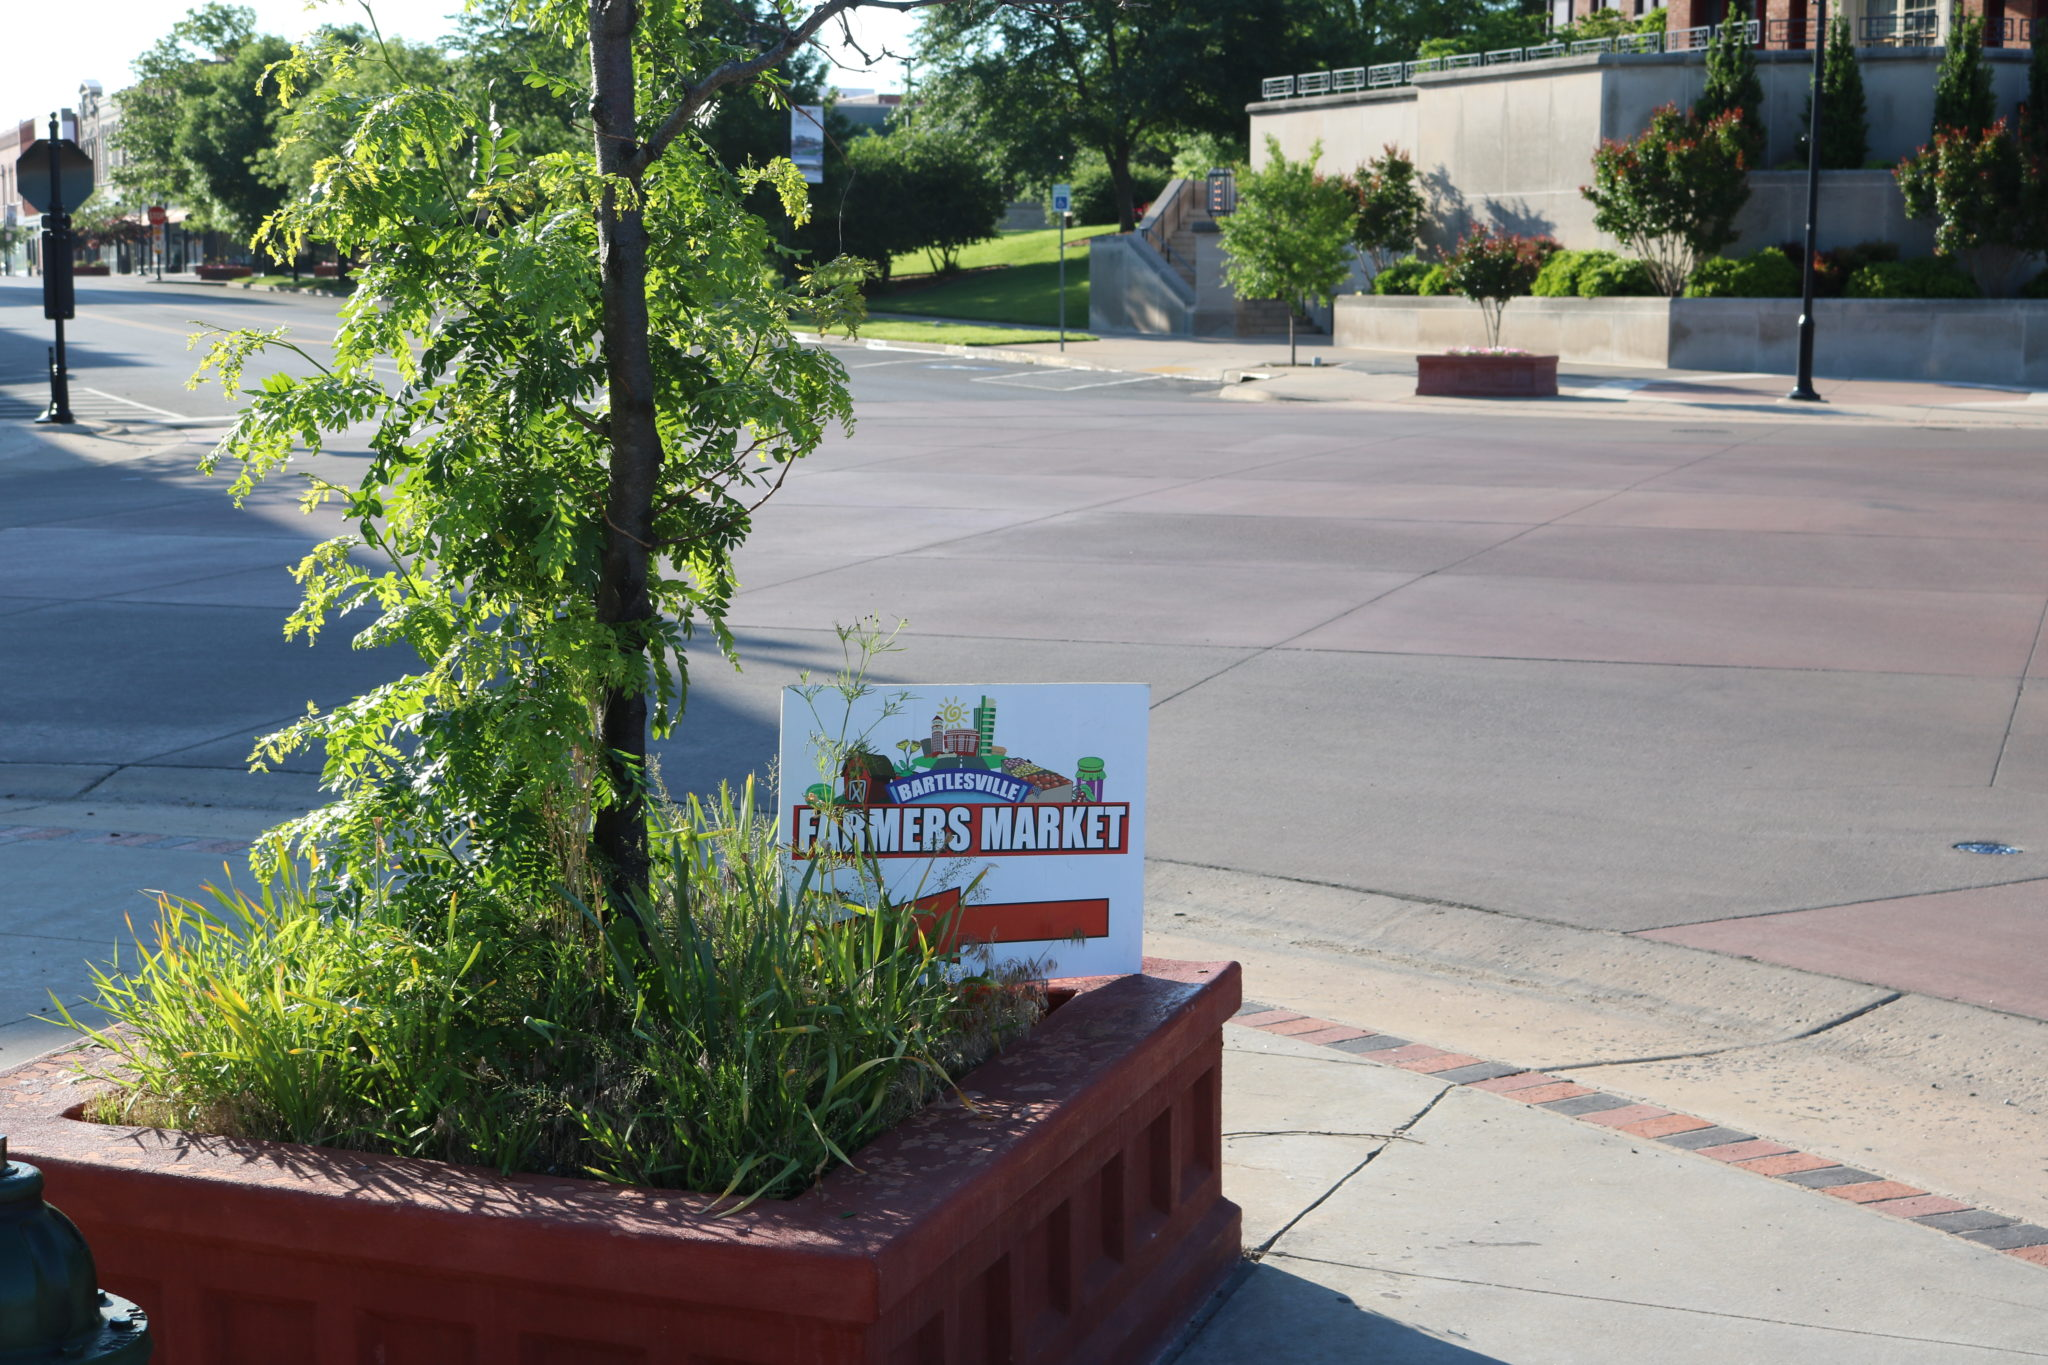 Bartlesville Farmers Market Sign in Planter